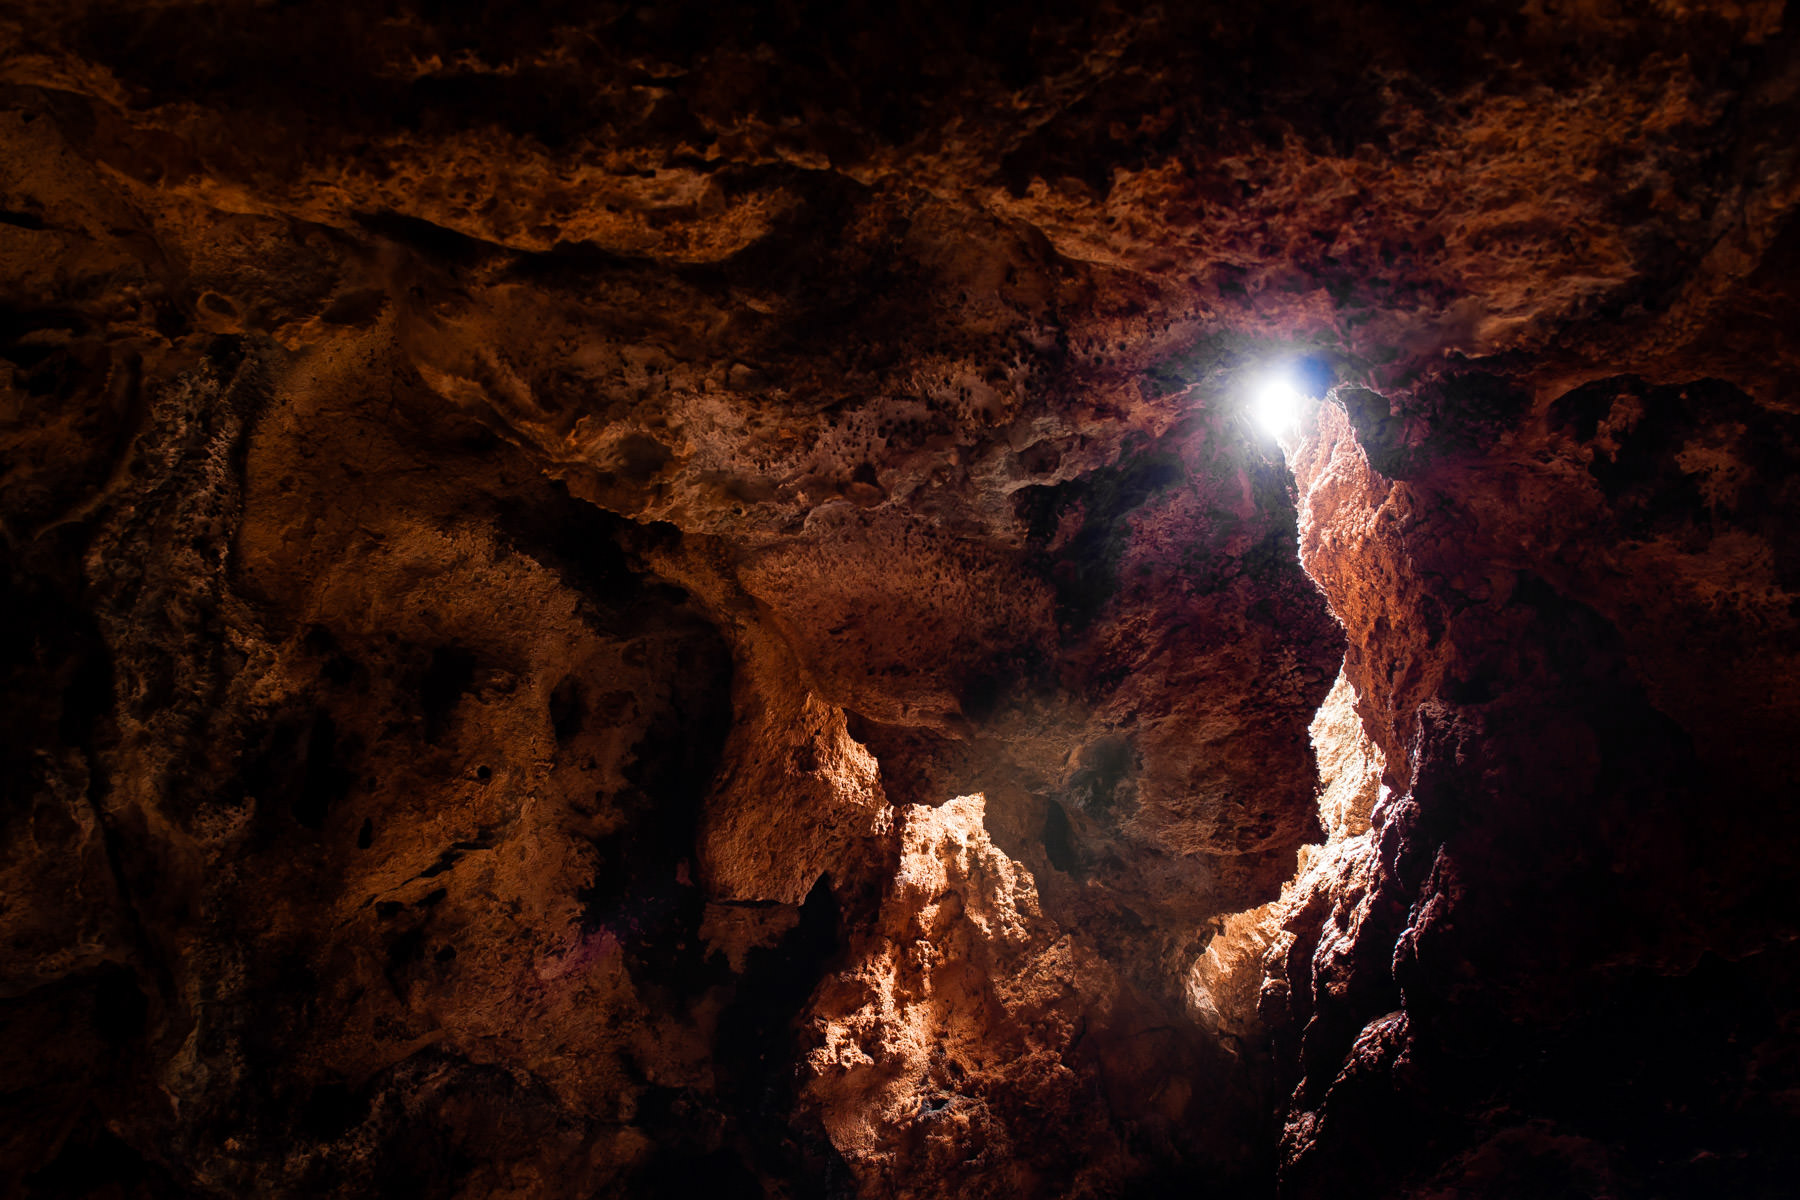 Sunlight streams through a small opening in the roof of a cave at Oklahoma's Turner Falls Park.